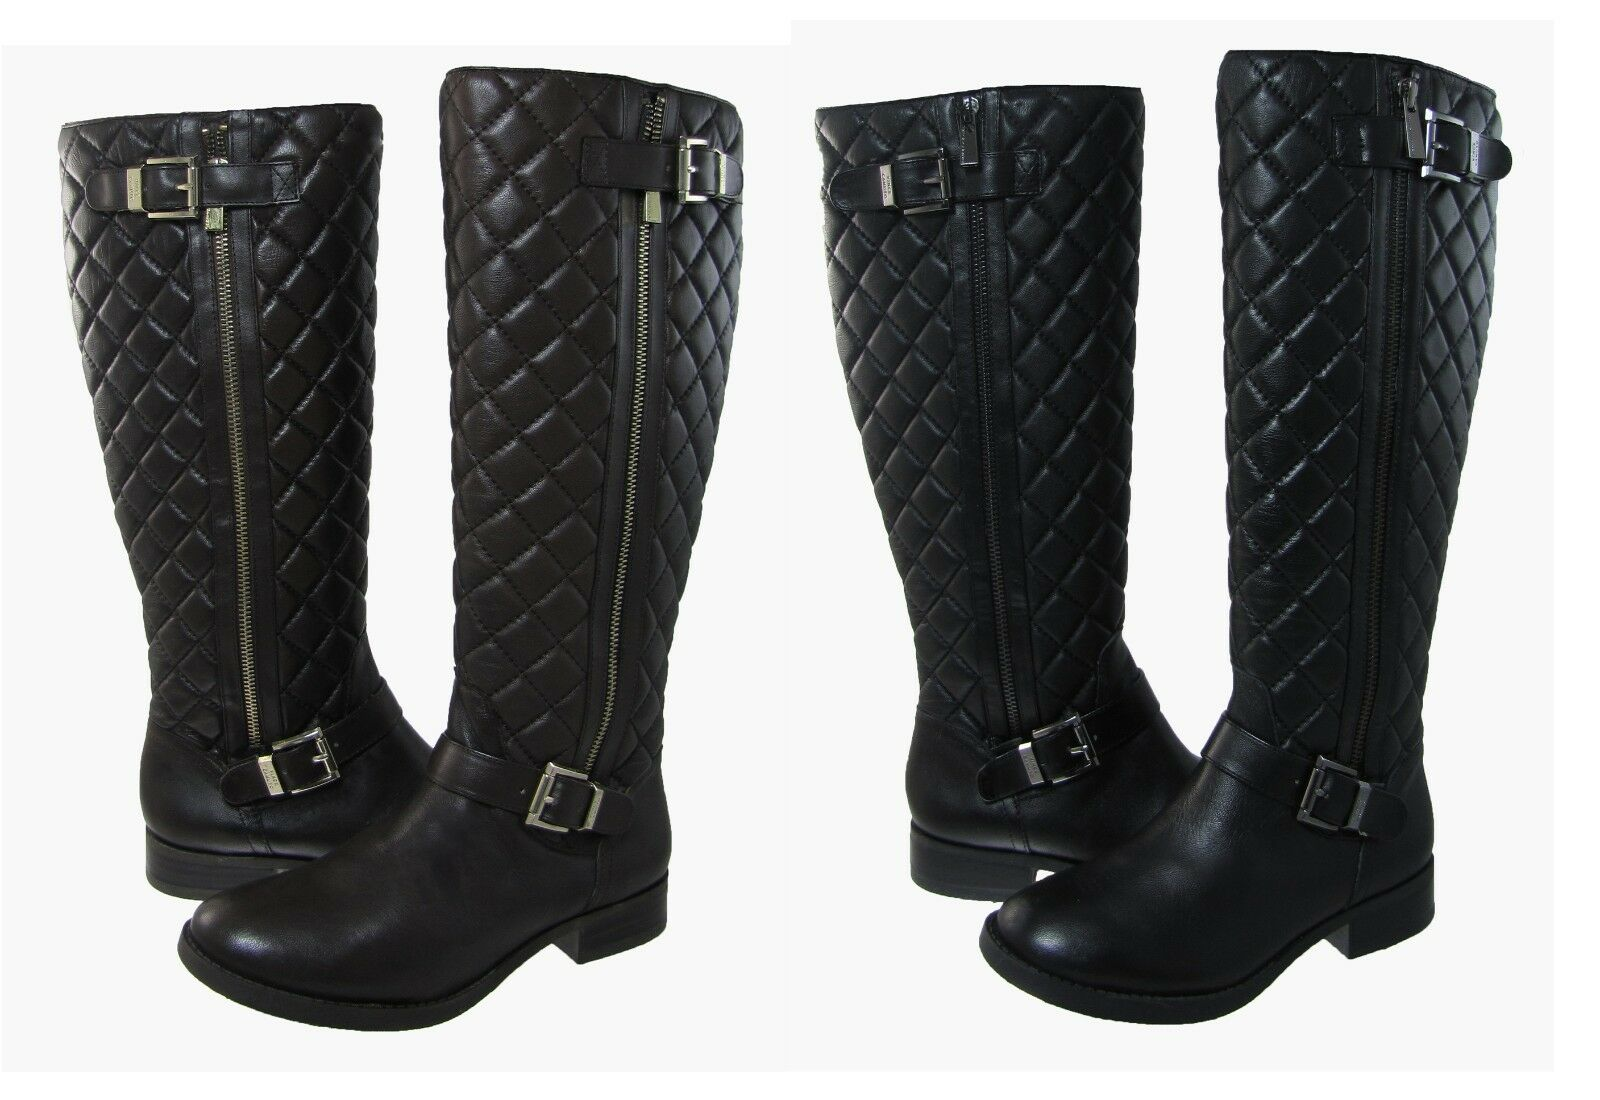 Vince Camuto Womens Fredrica Quilted Knee High Pull On Zipper Riding Boots